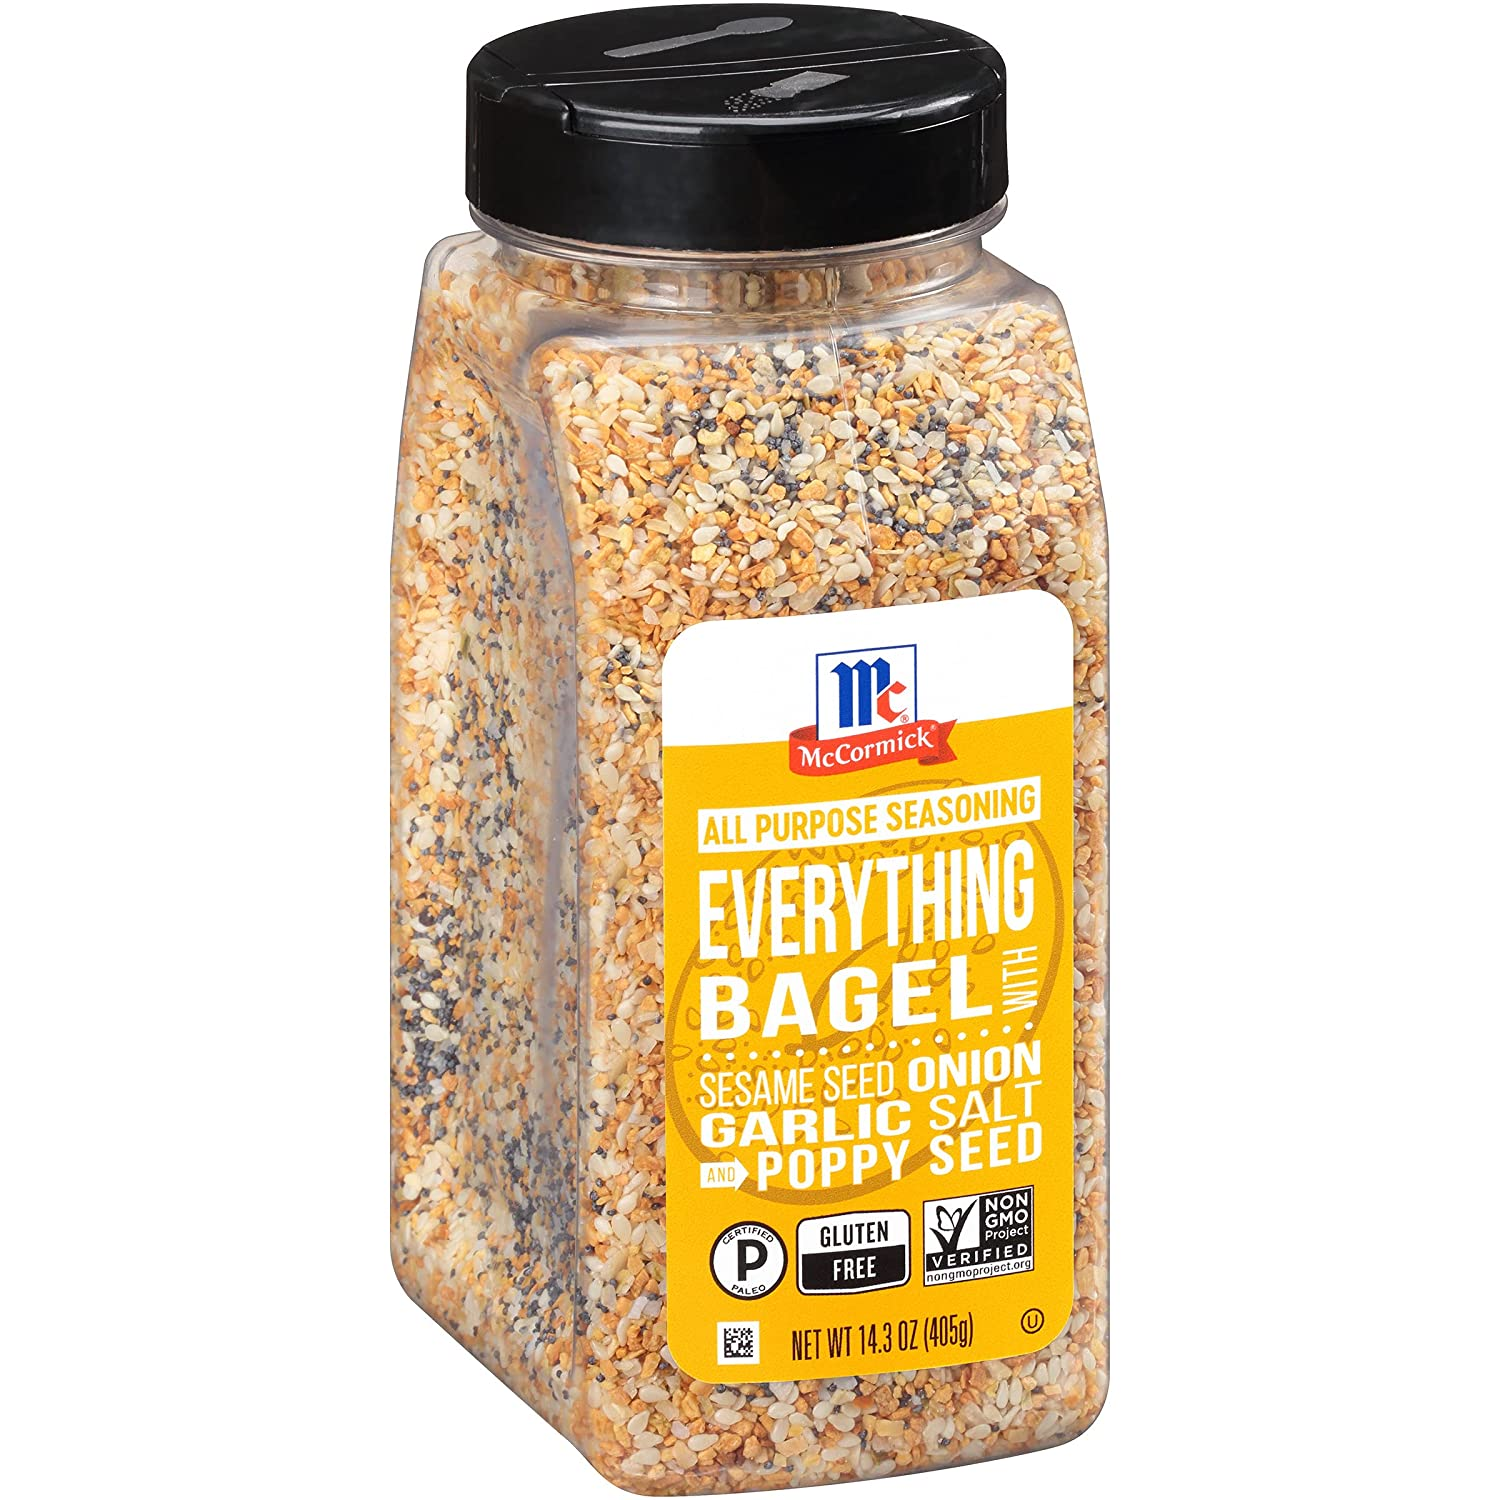 McCormick Now on sale Everything Bagel All Seasoning oz 14.3 Purpose In a popularity